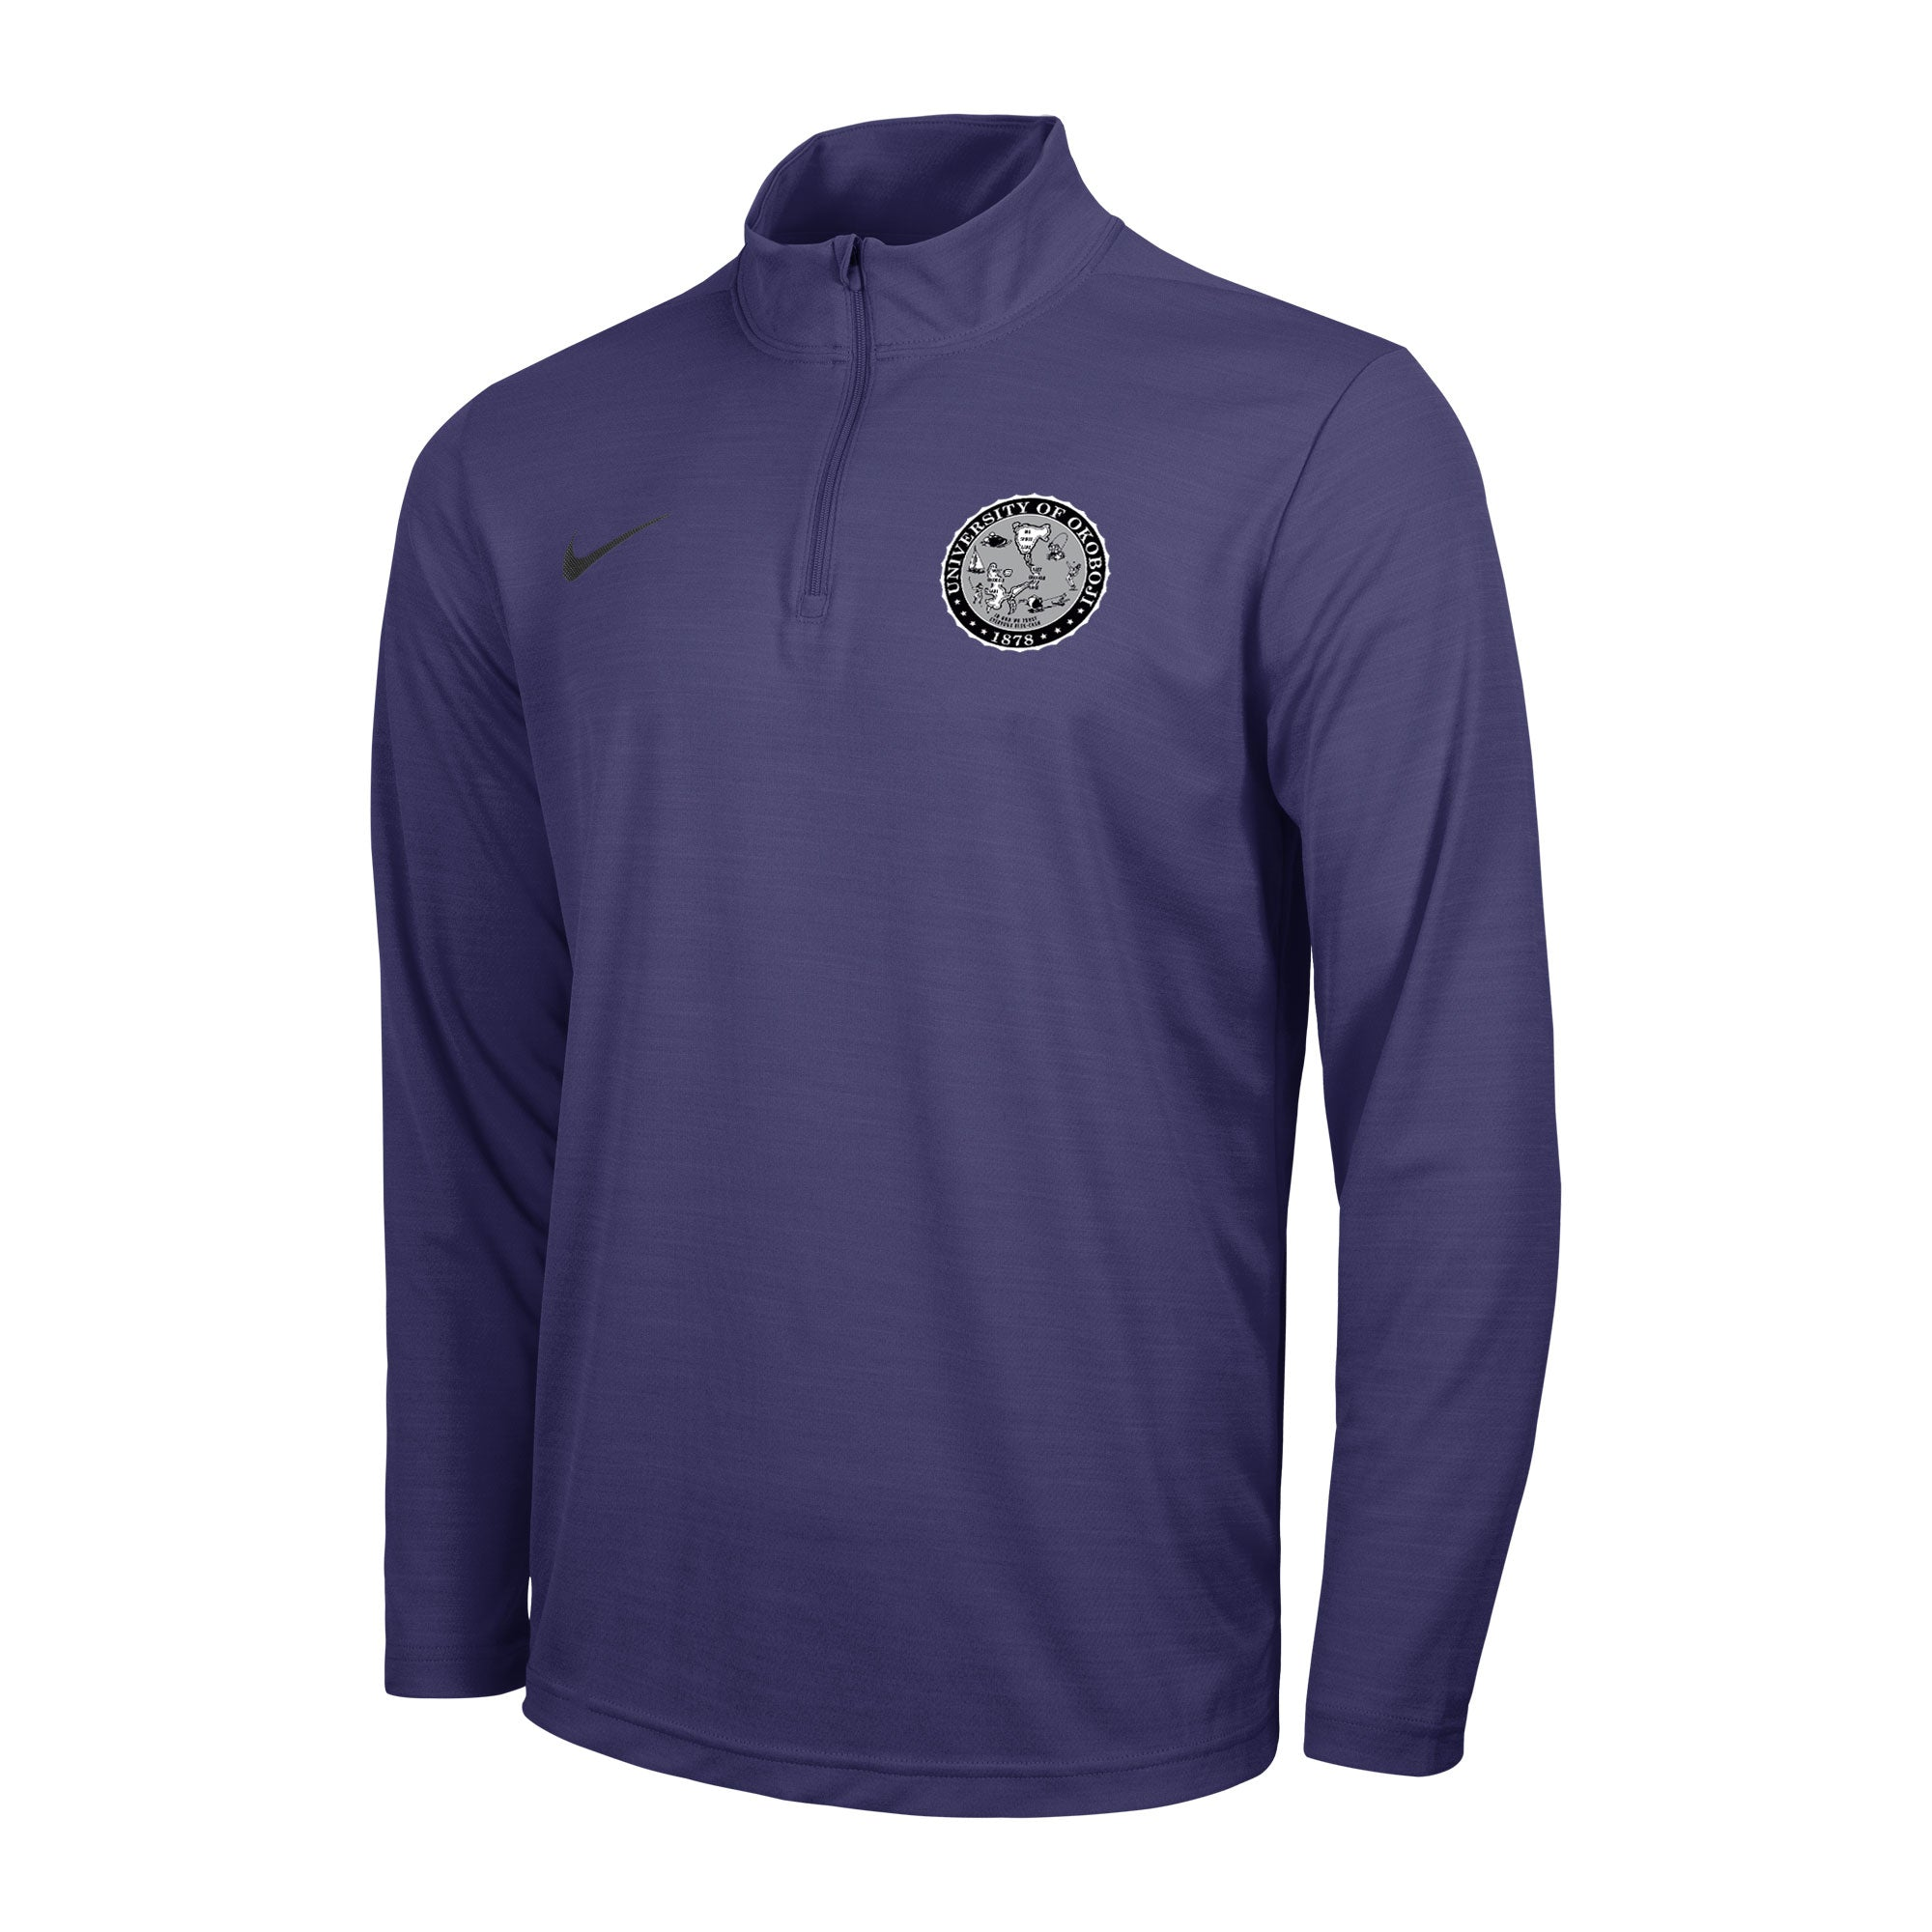 Men's Okoboji Intensity 1/4 Zip Top - Orchid Purple